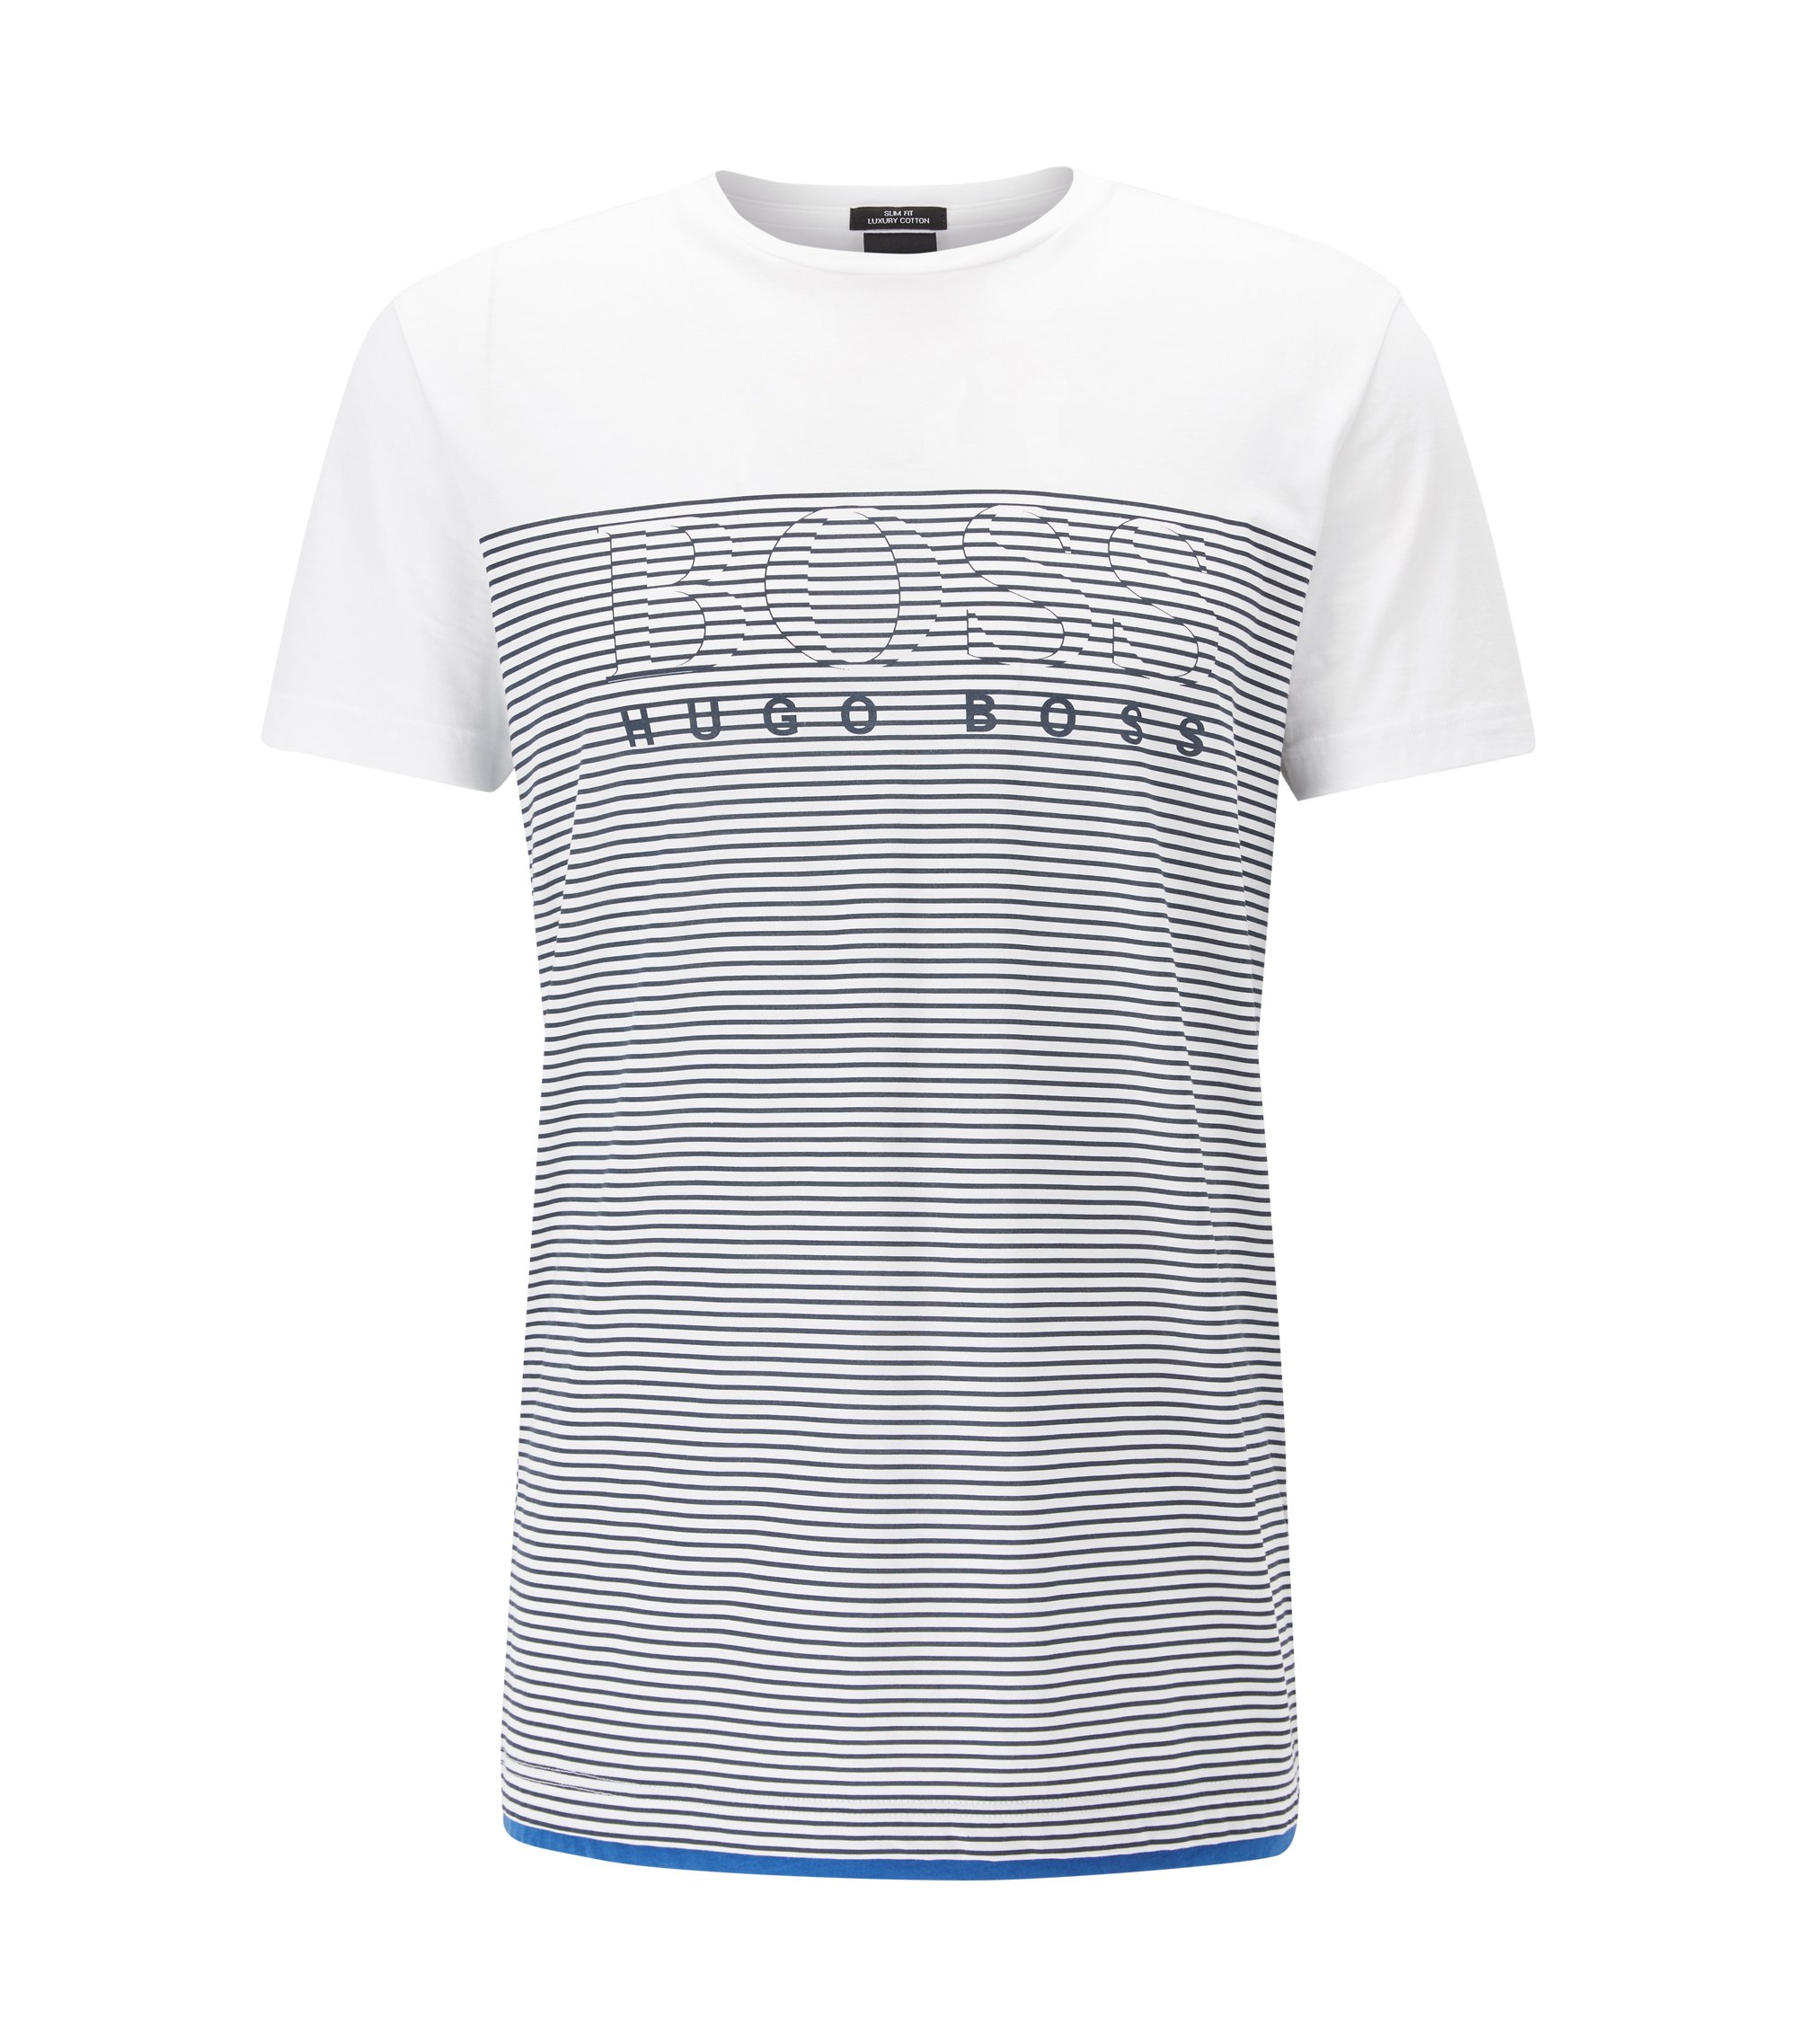 Slim-fit striped T-shirt in cotton, White